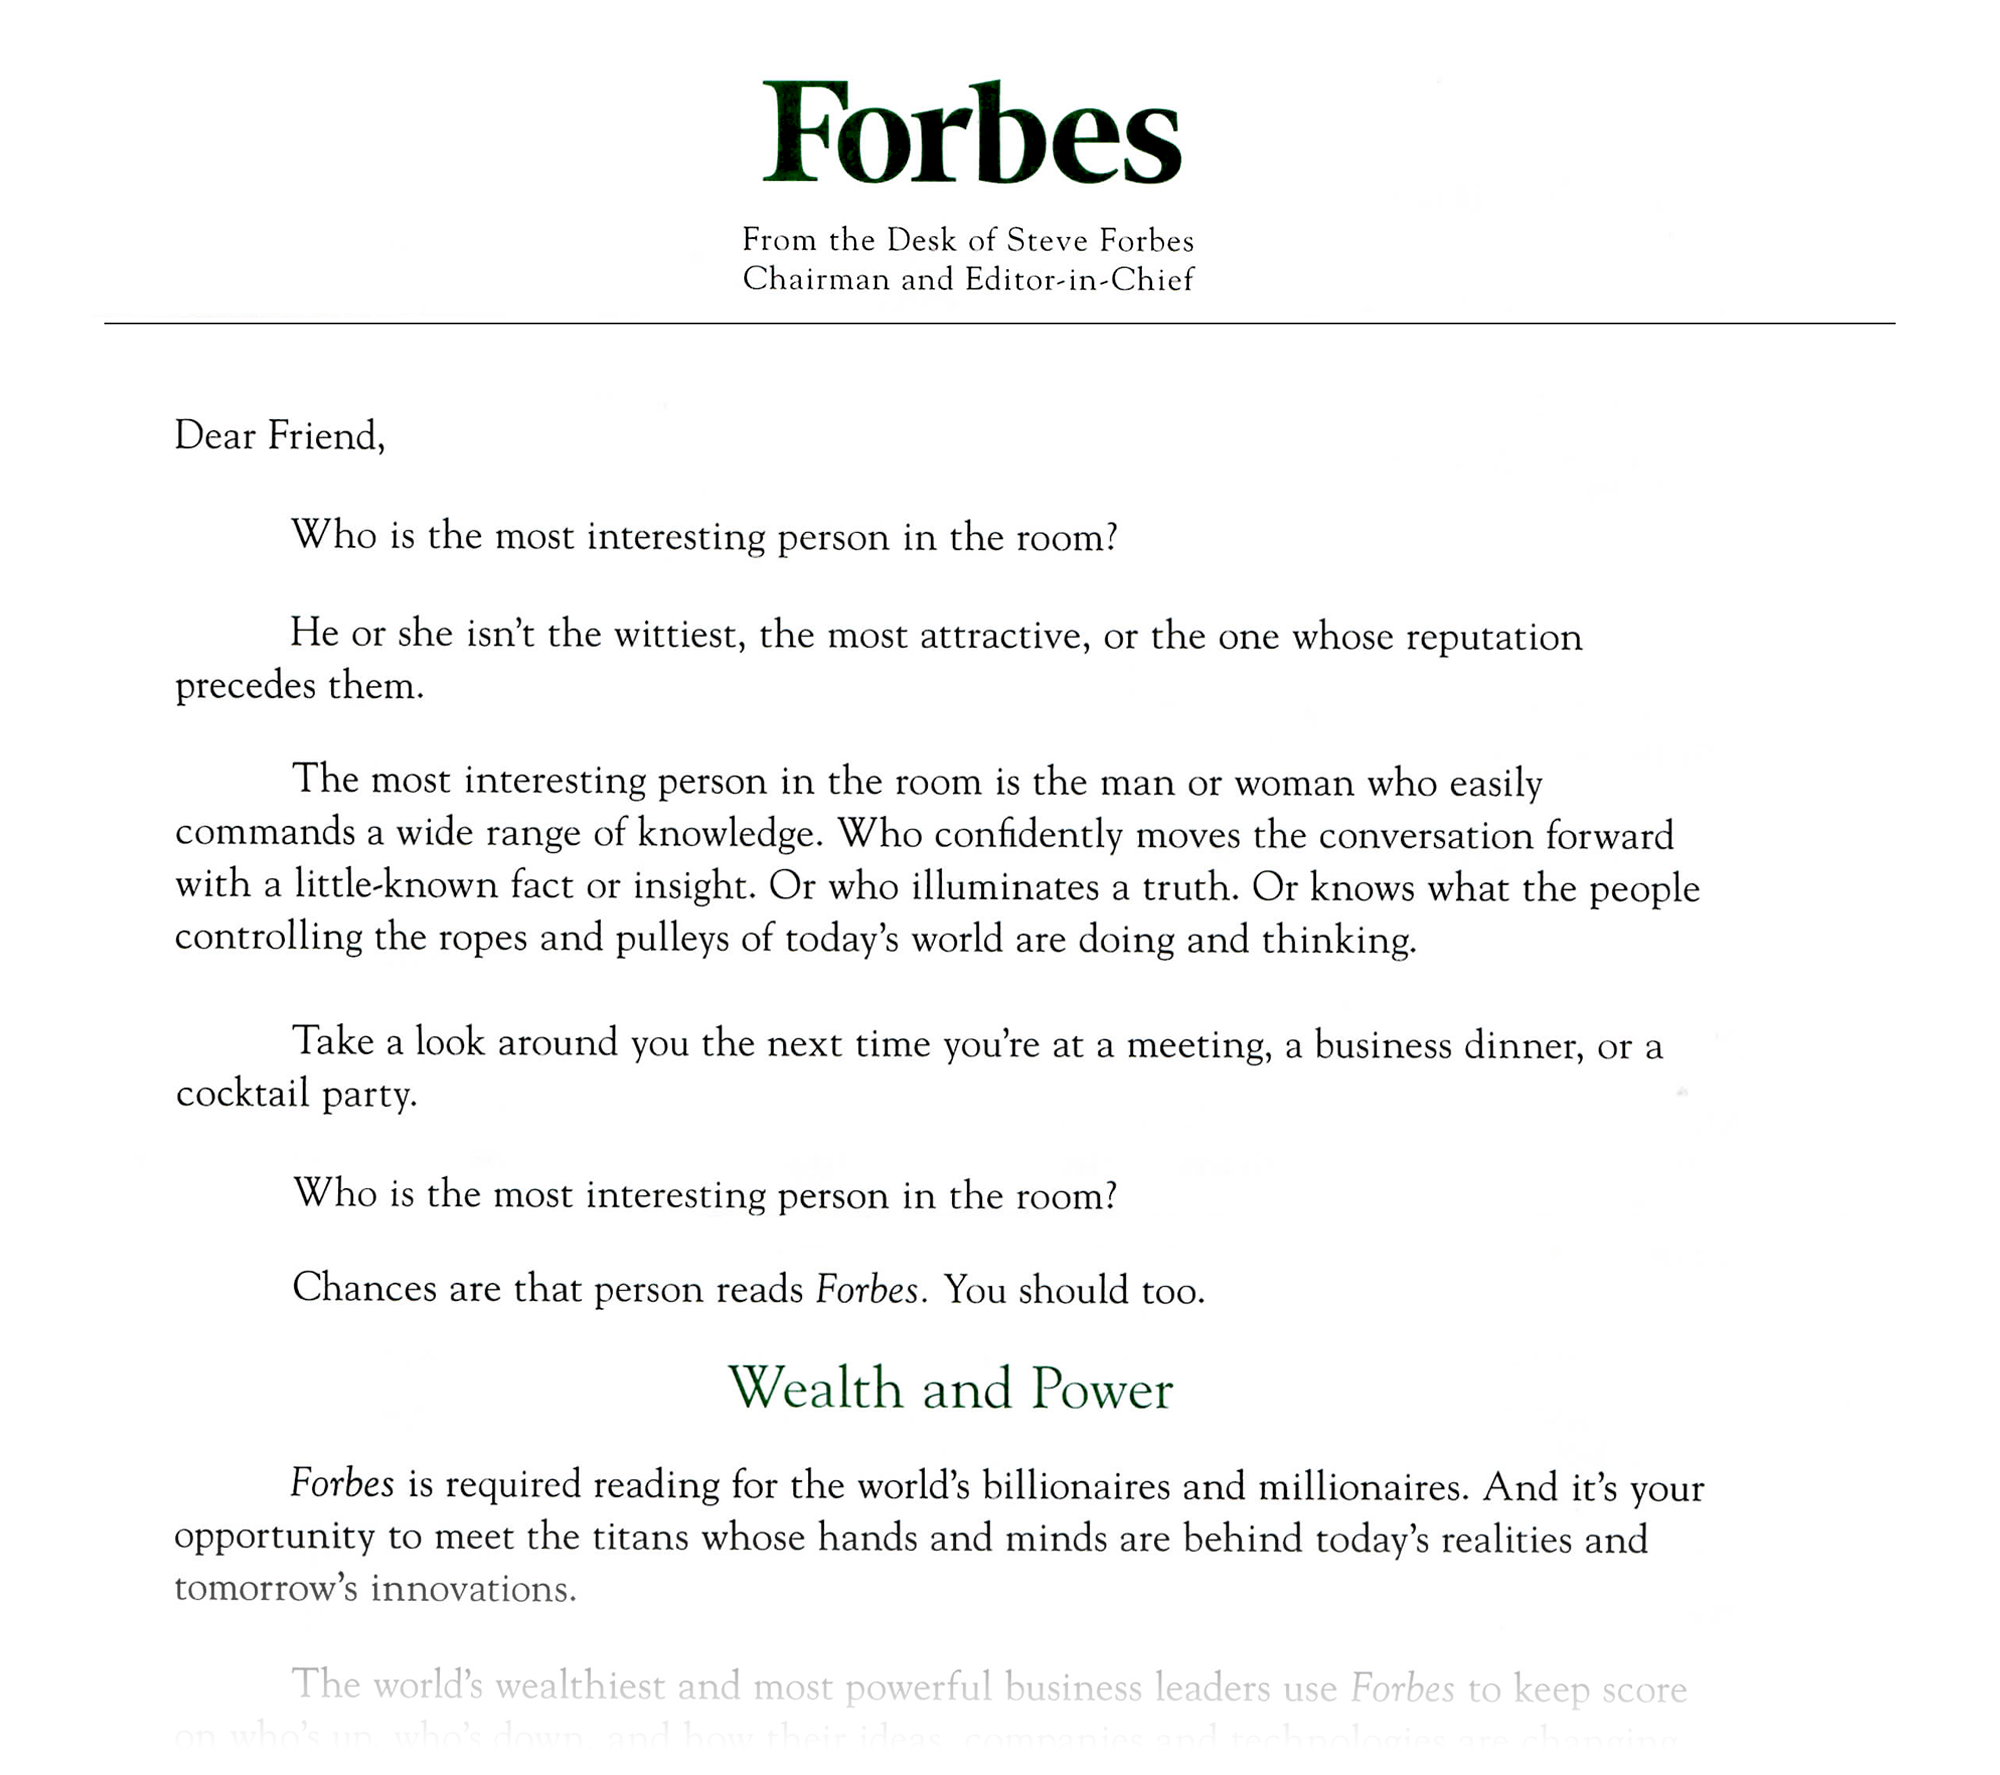 """Forbes magazine's """"Who is the most interesting person in the room?"""" subscriber acquisitions letter"""